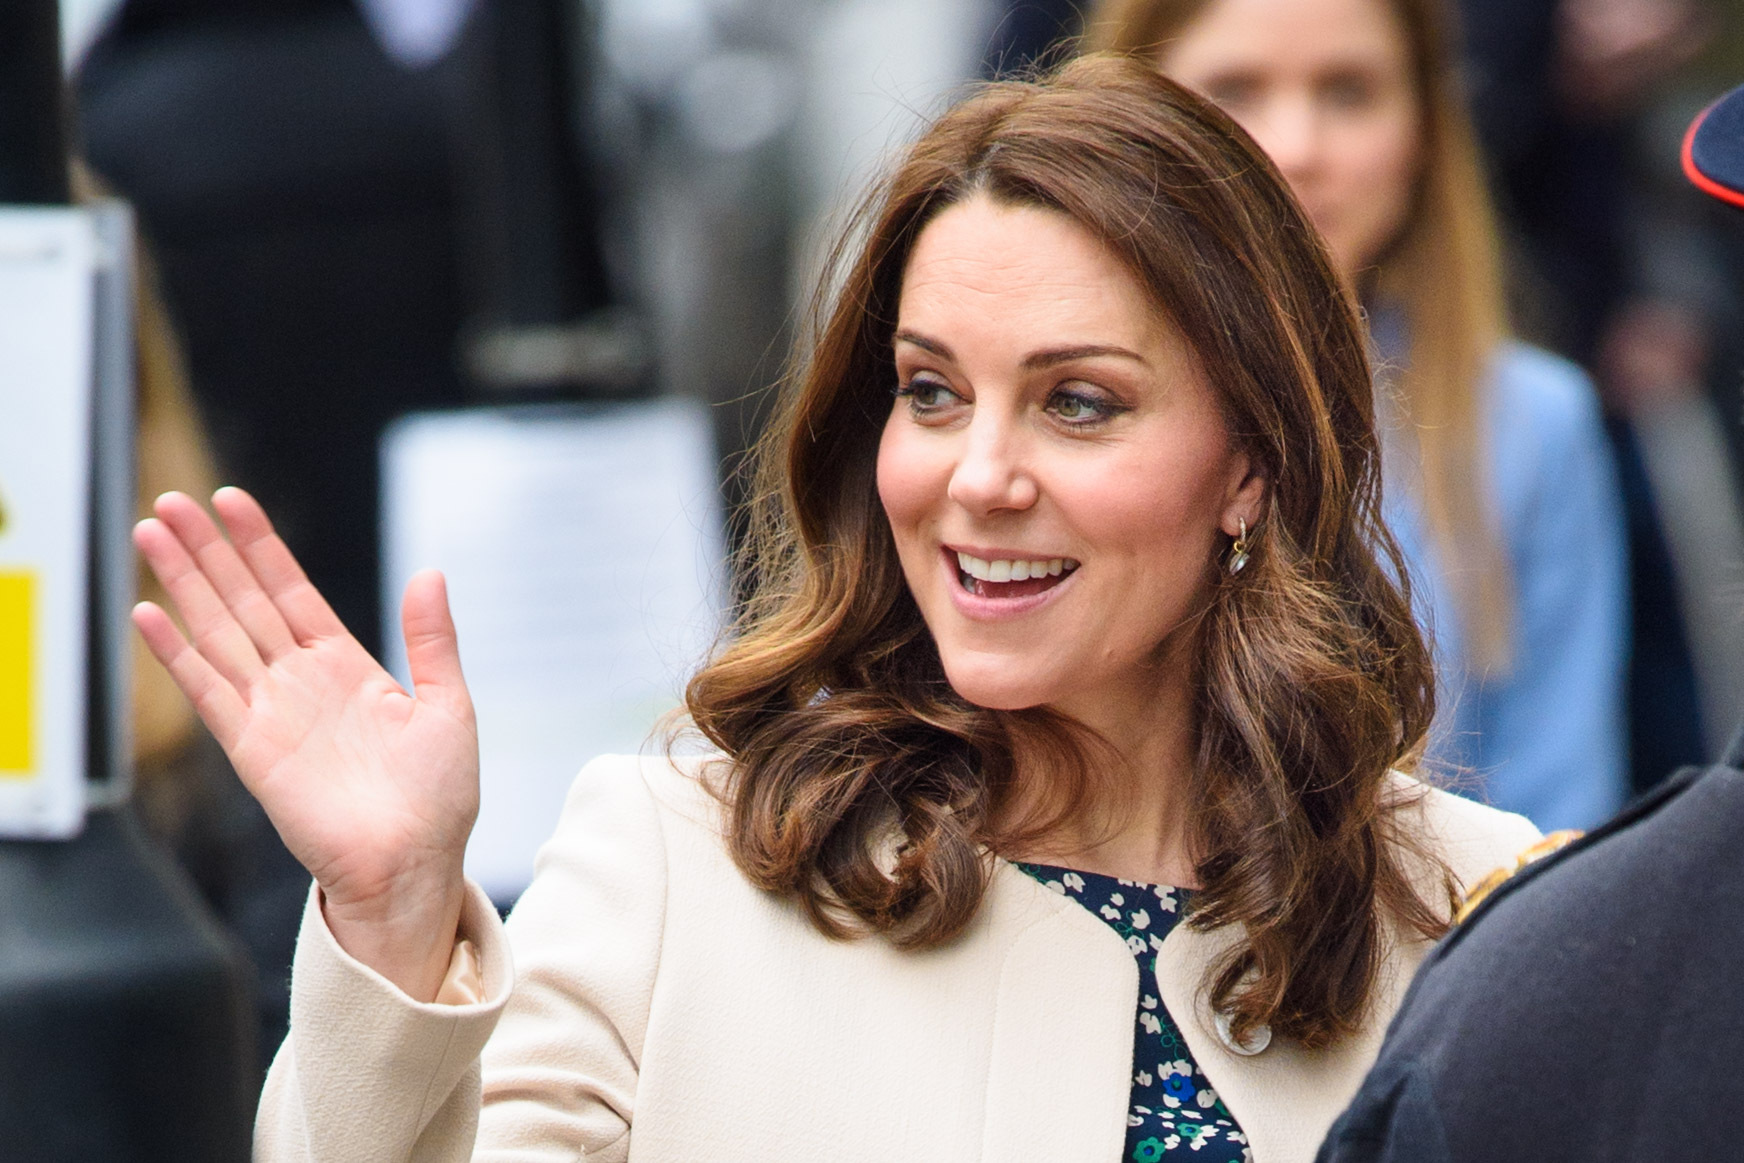 pictures So proud': Duchess of York shares heartfelt message to Prince Andrew